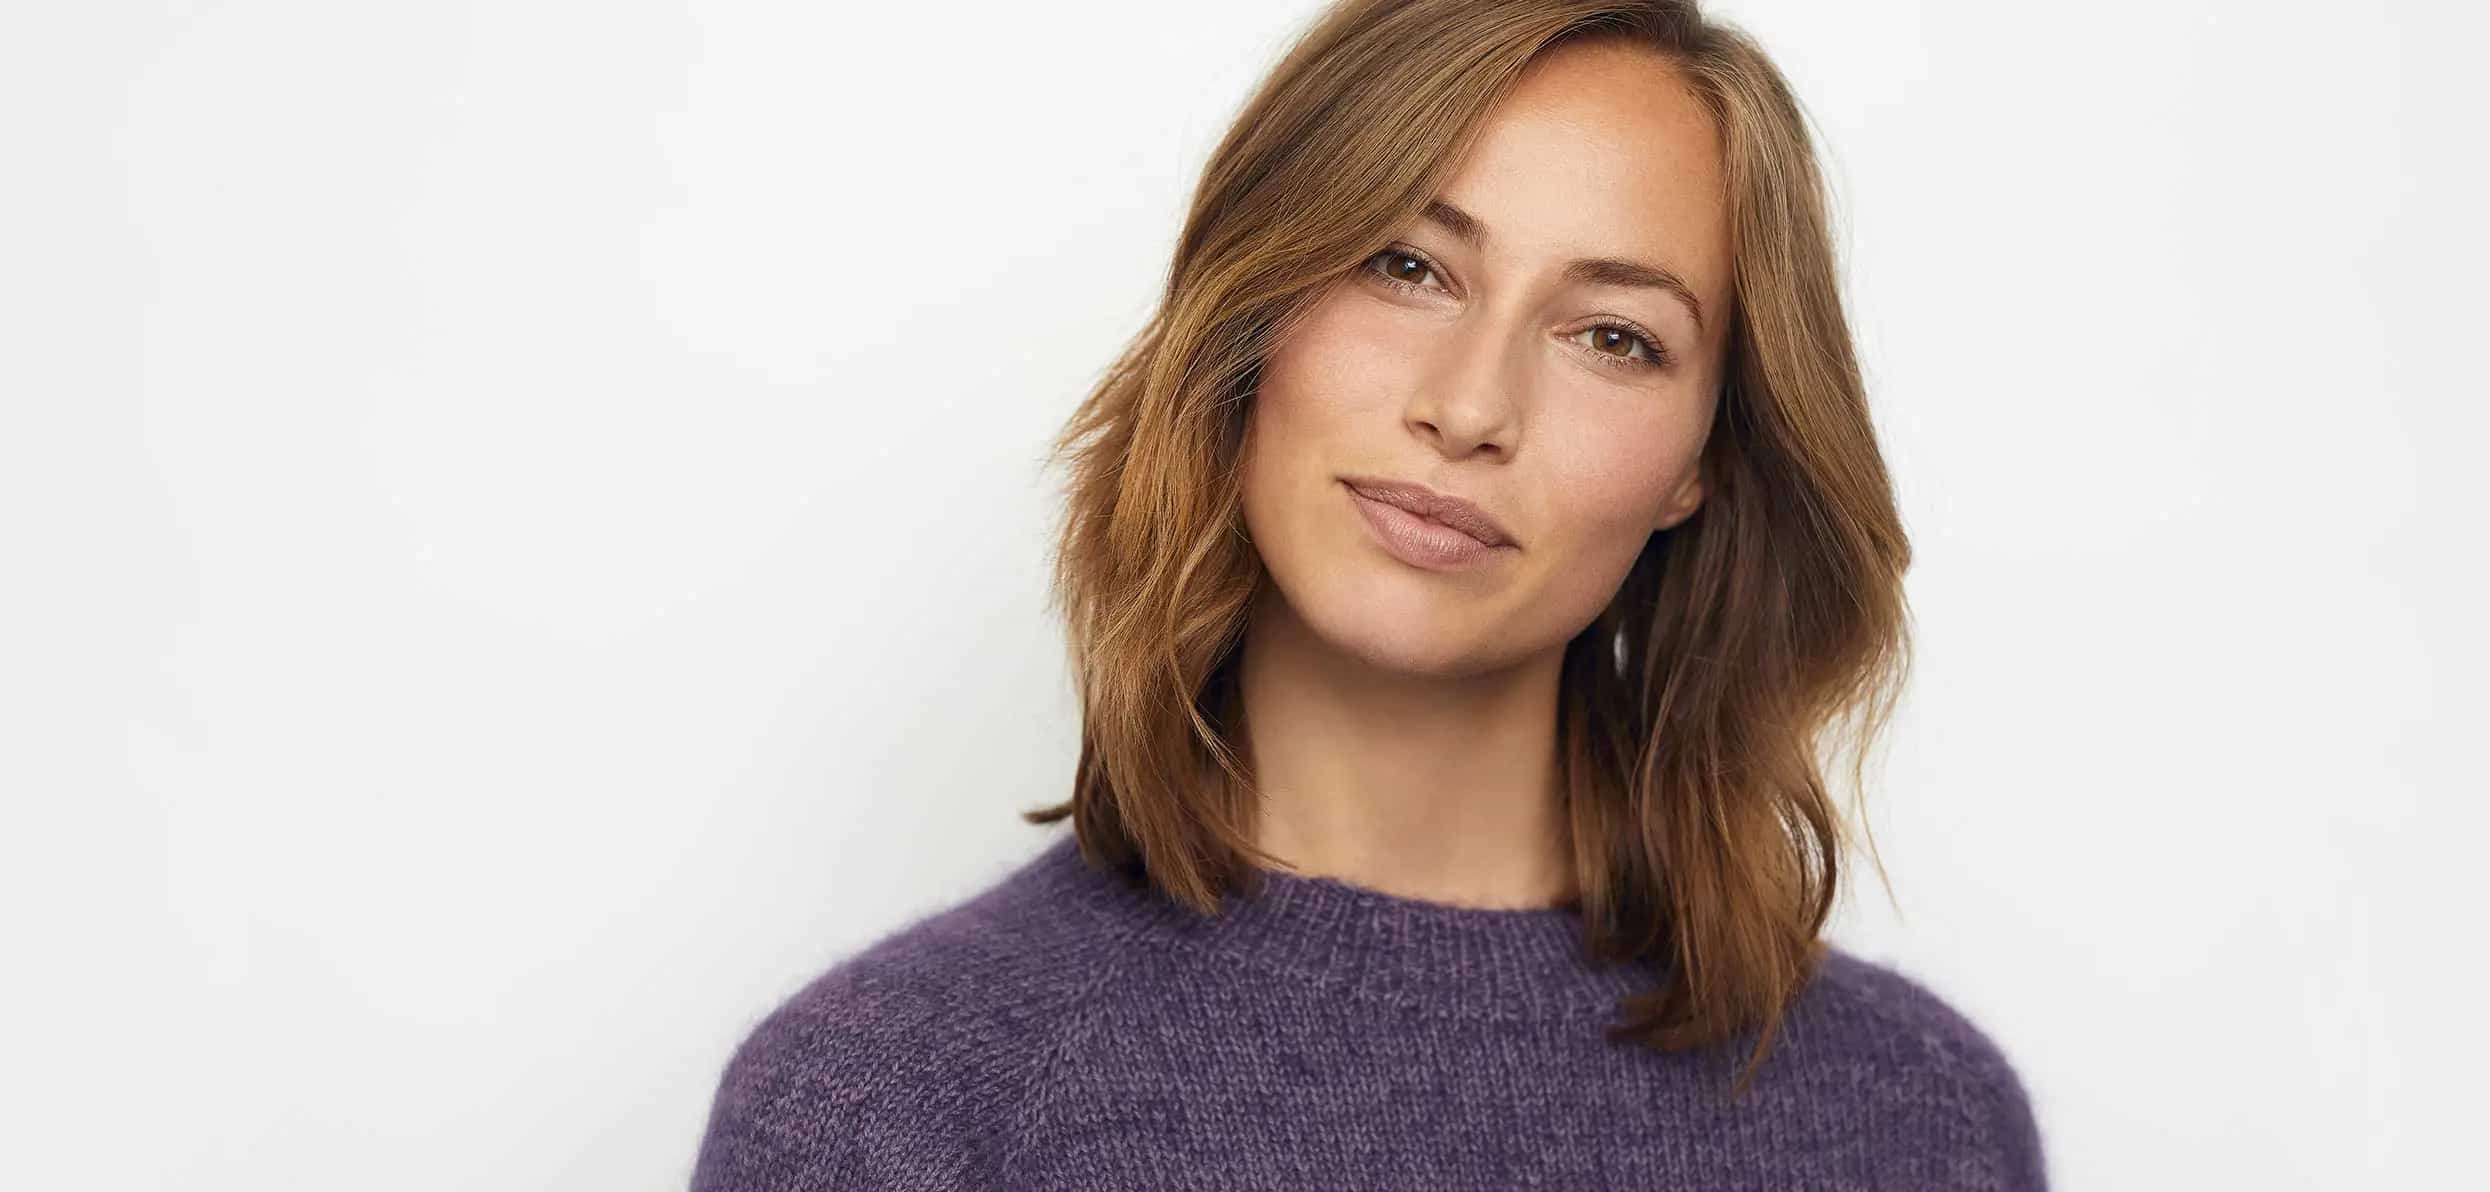 A woman with brown hair and a purple knitted shirt - how hormone replacement therapy works